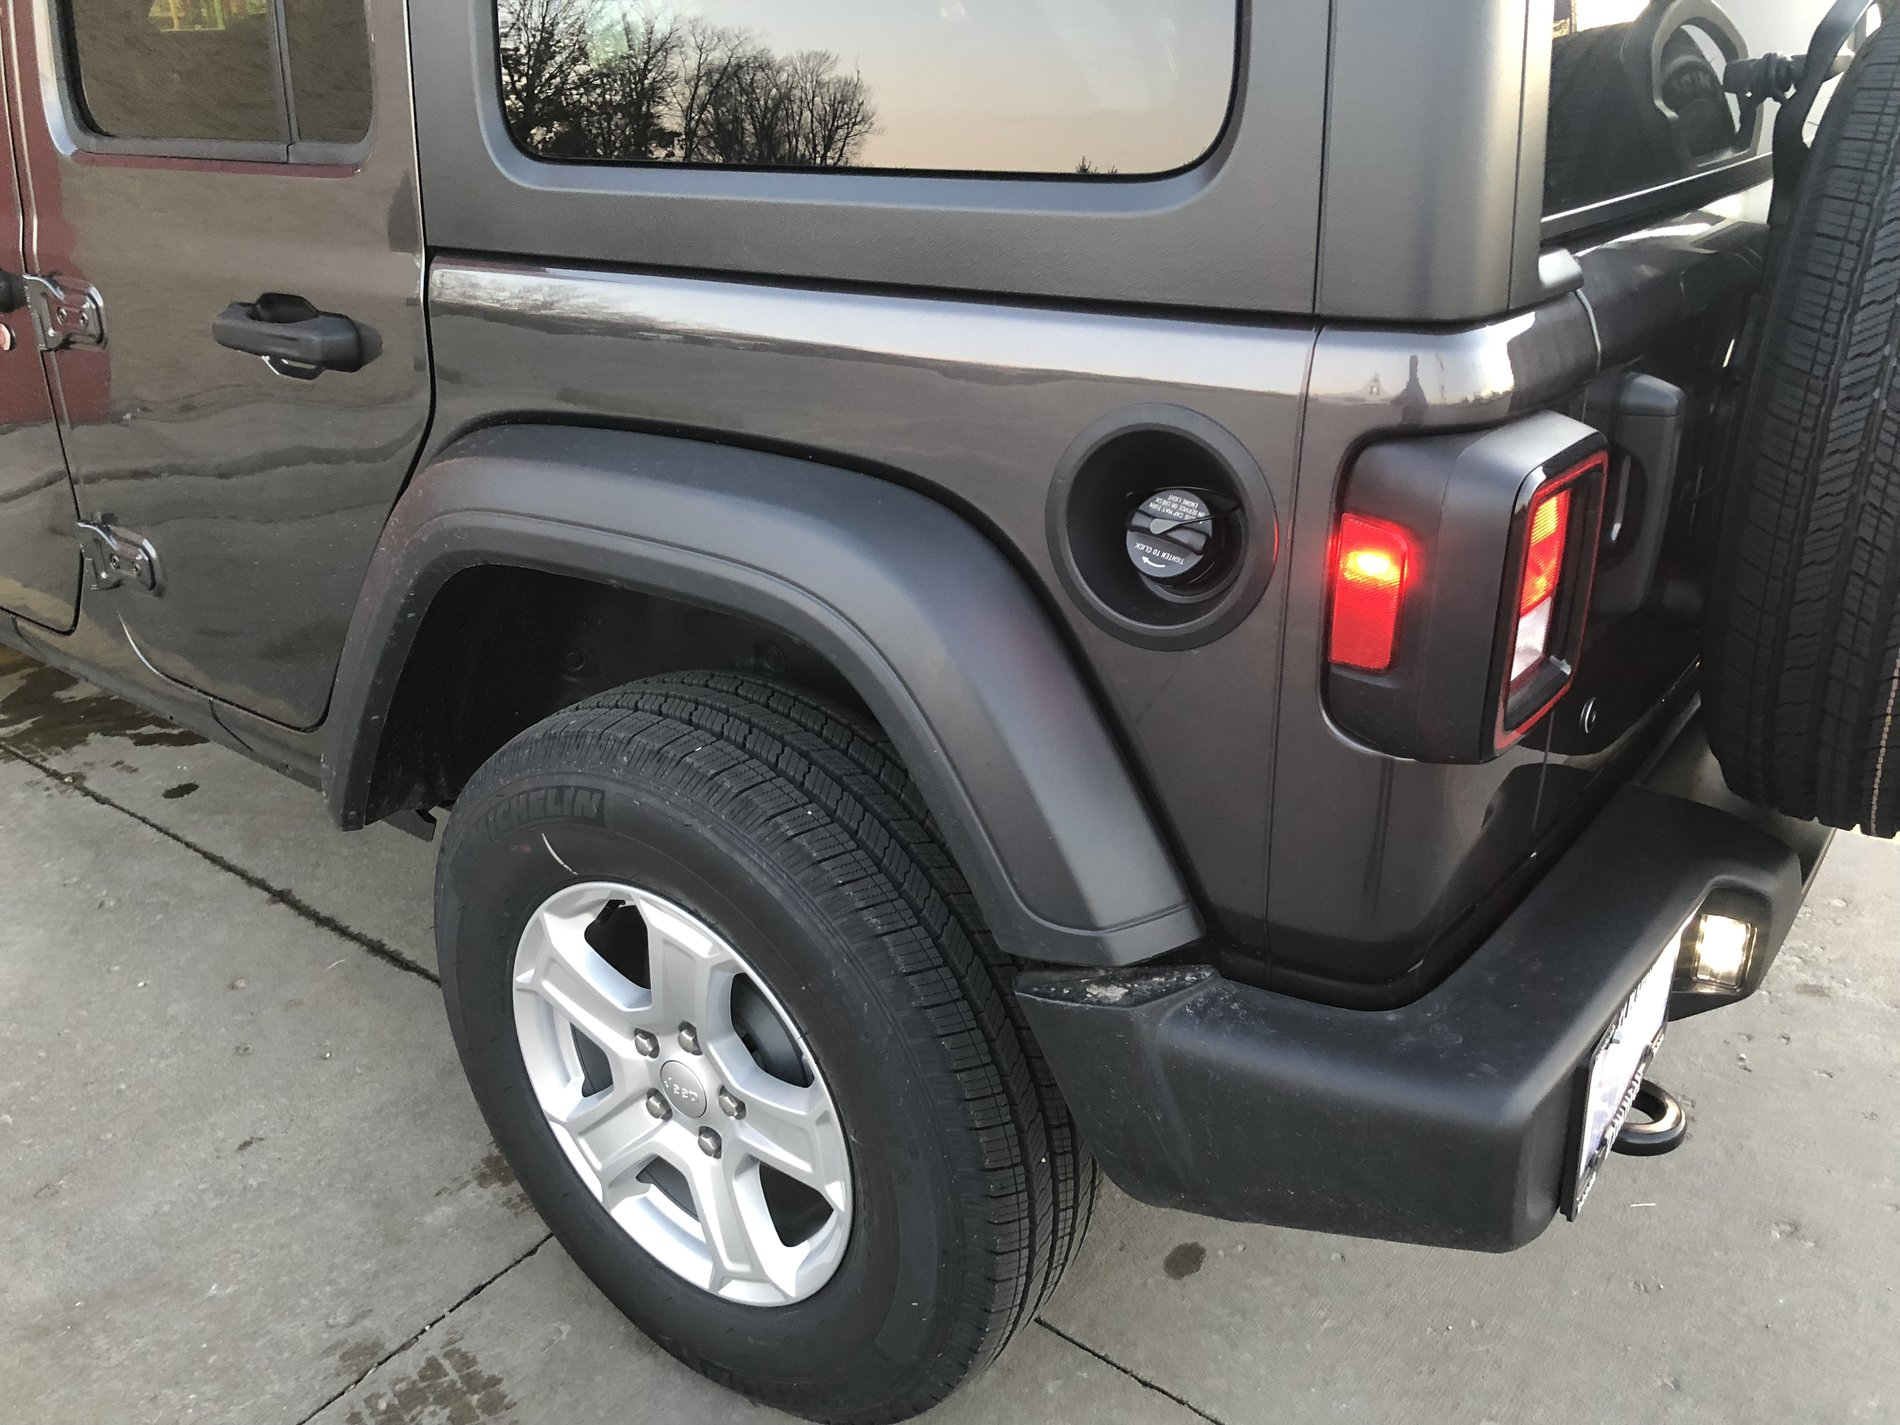 Image result for jeep wrangler non locking gas fill cap